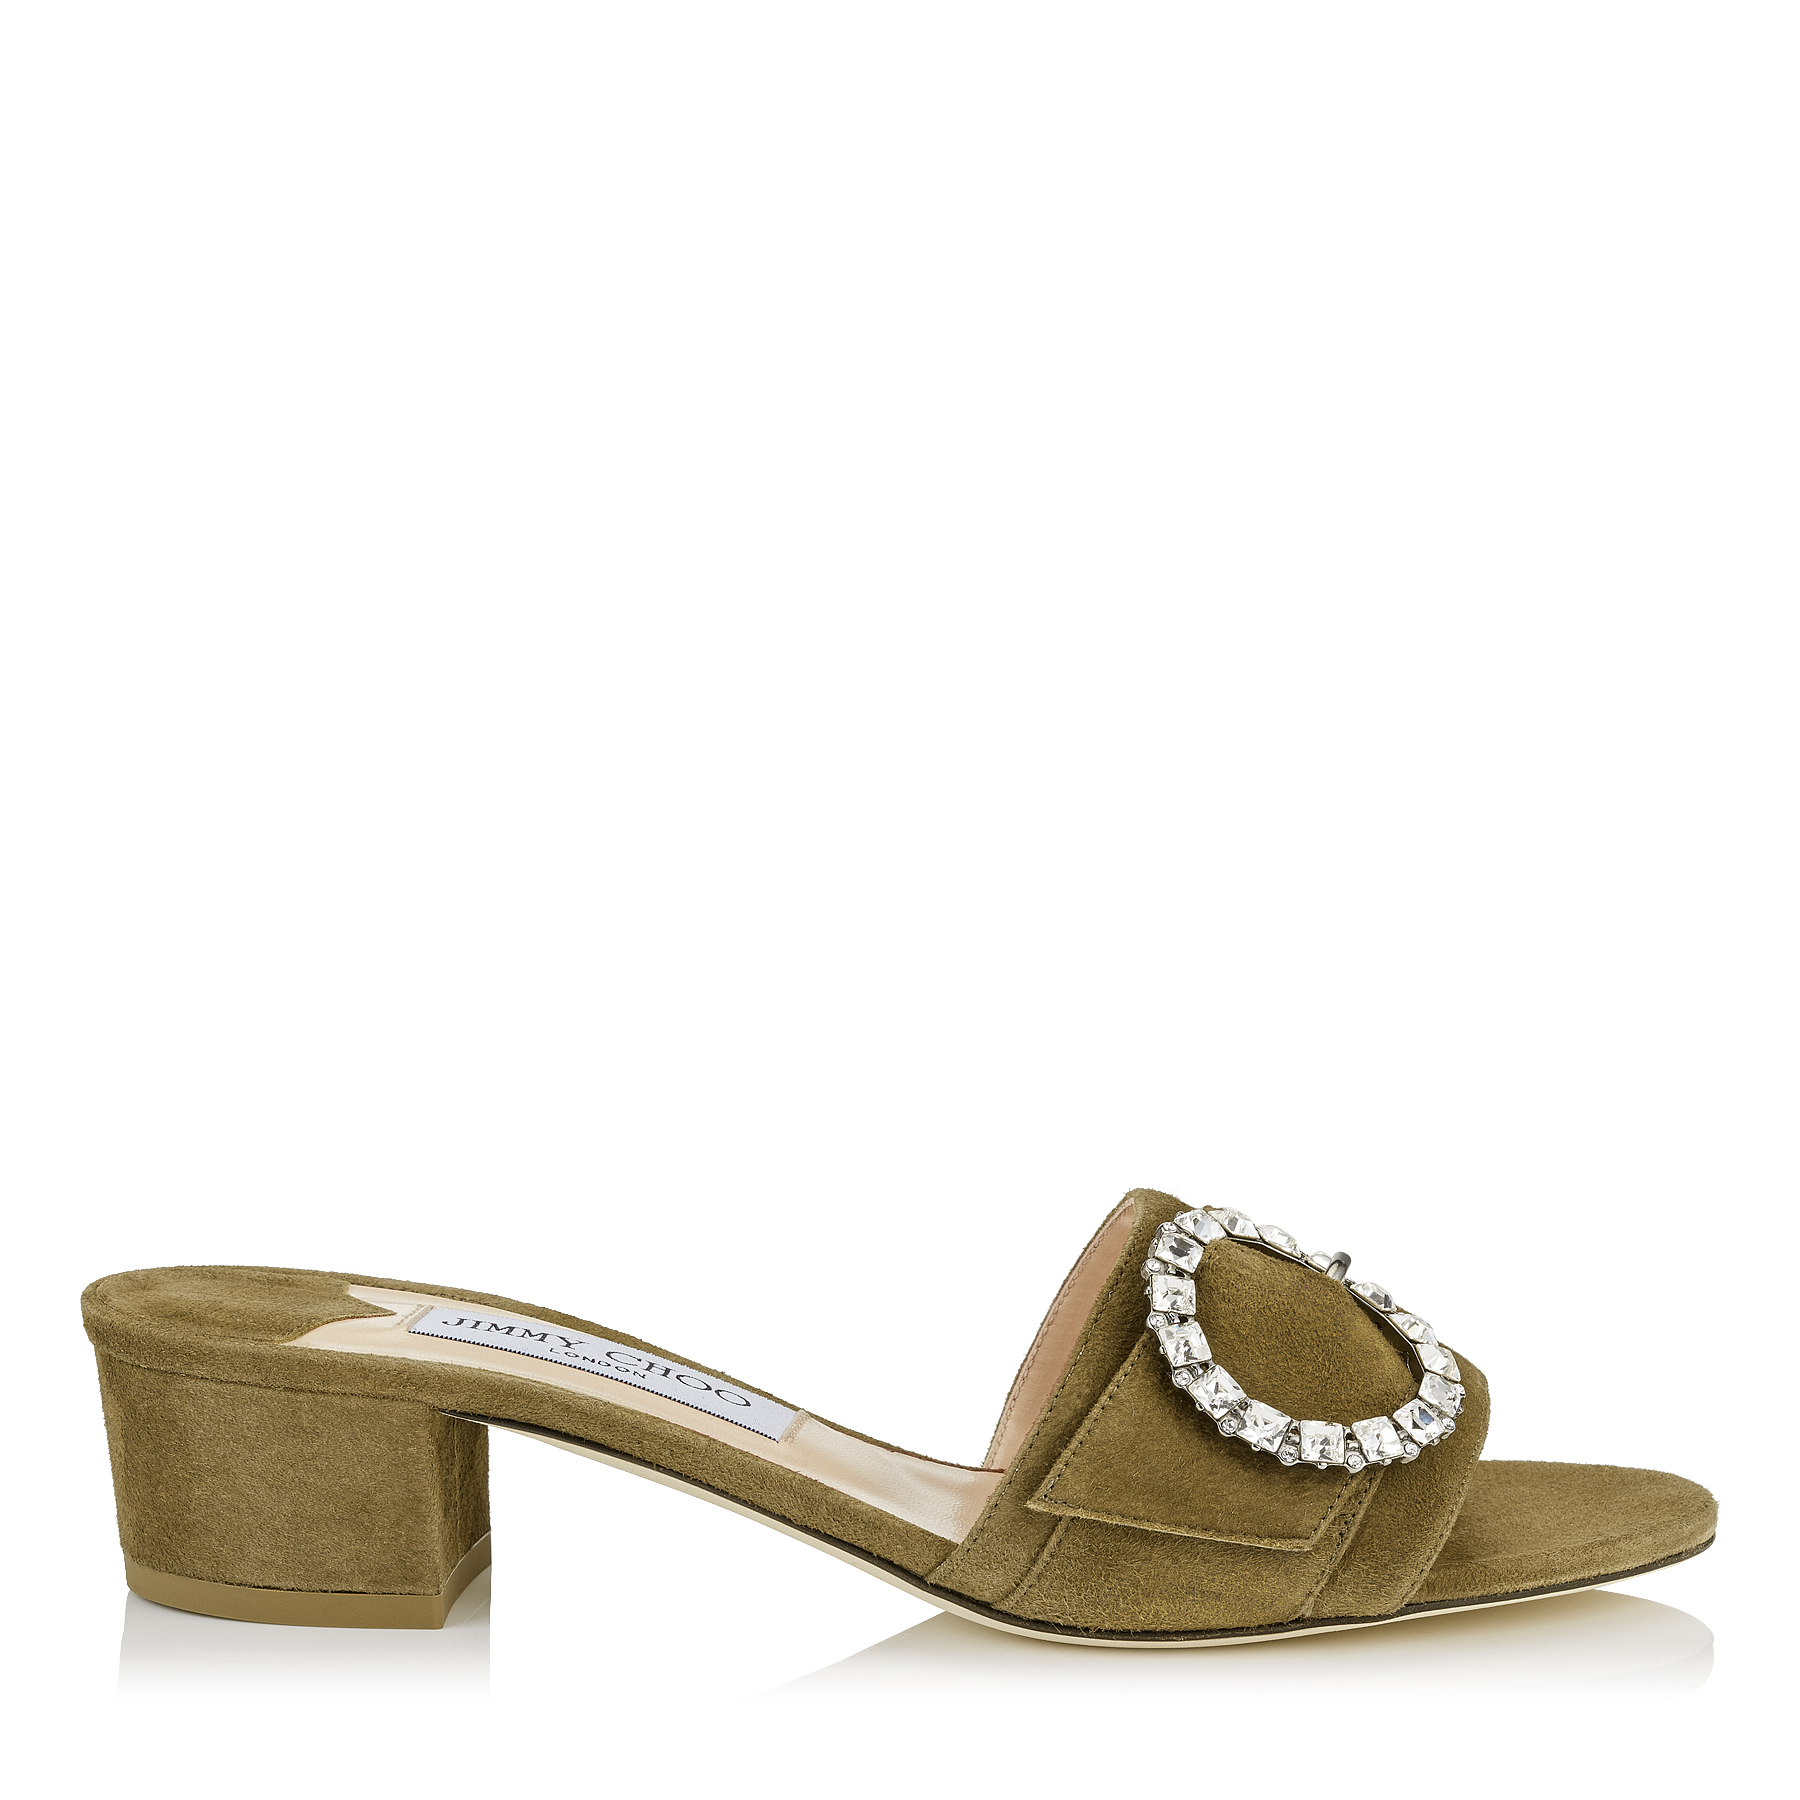 GRANGER 35 Olive Suede Mules with Crystal Buckle by Jimmy Choo